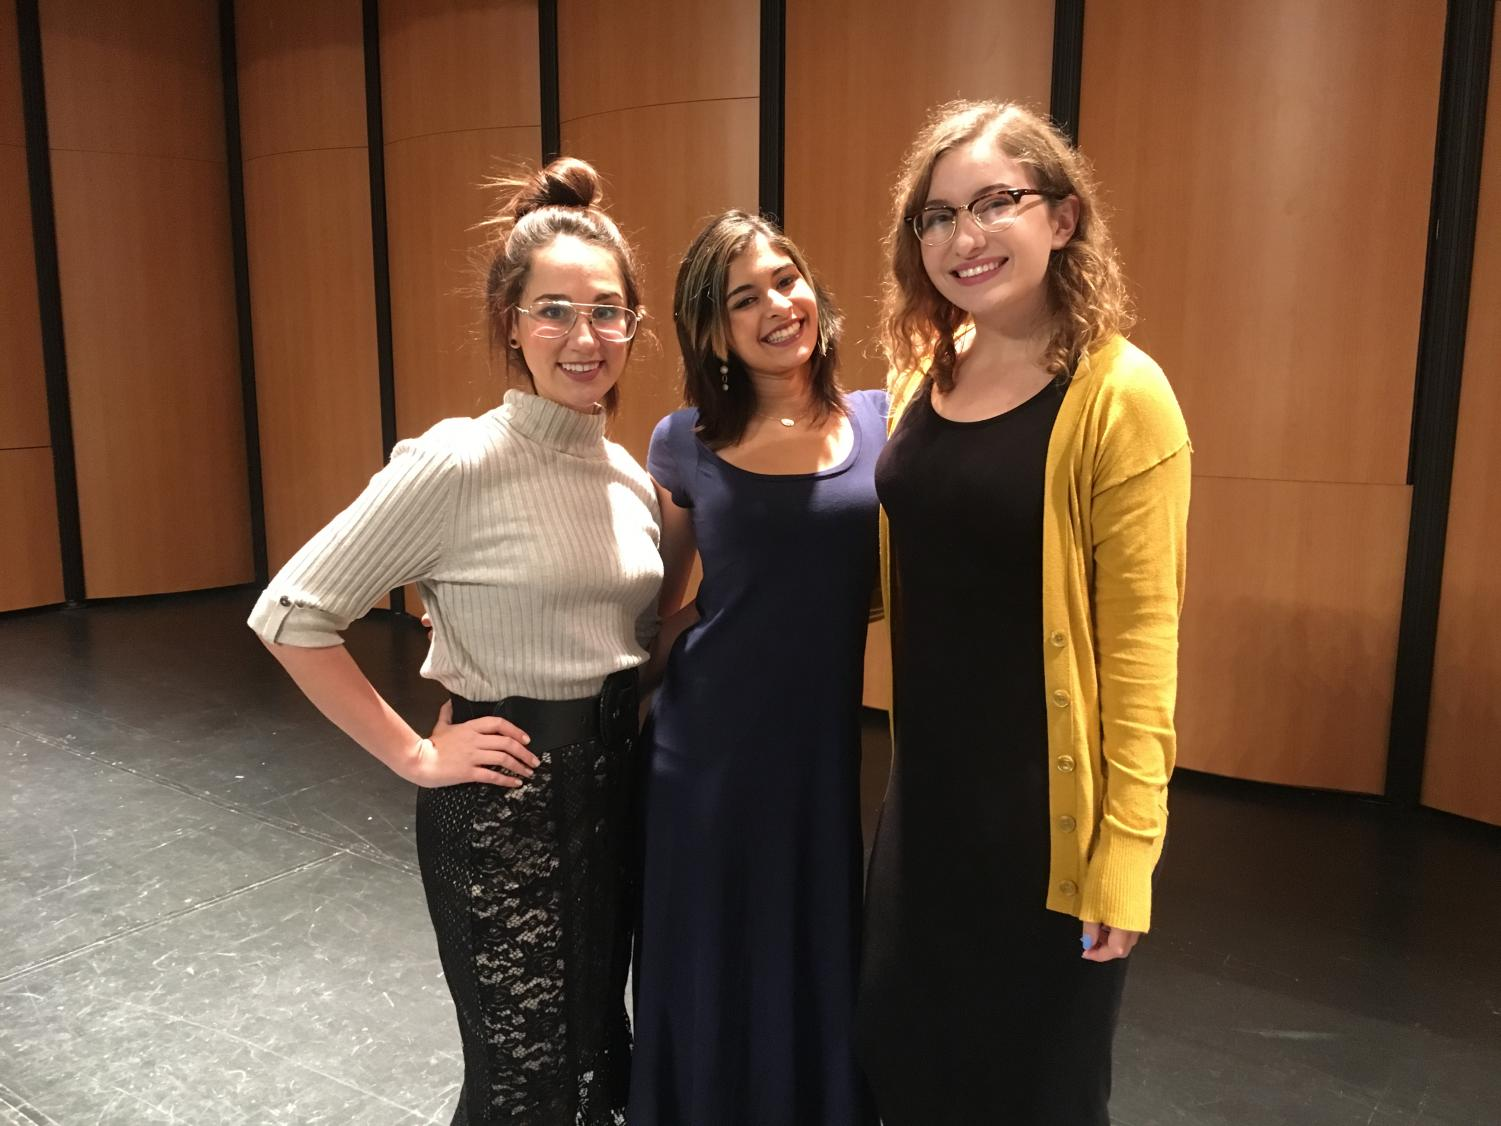 From left to right, speakers Morgan Brunet, Mishi Banerjee and Alysse Arceneaux pictured after the Speech Forum on Nov. 8.